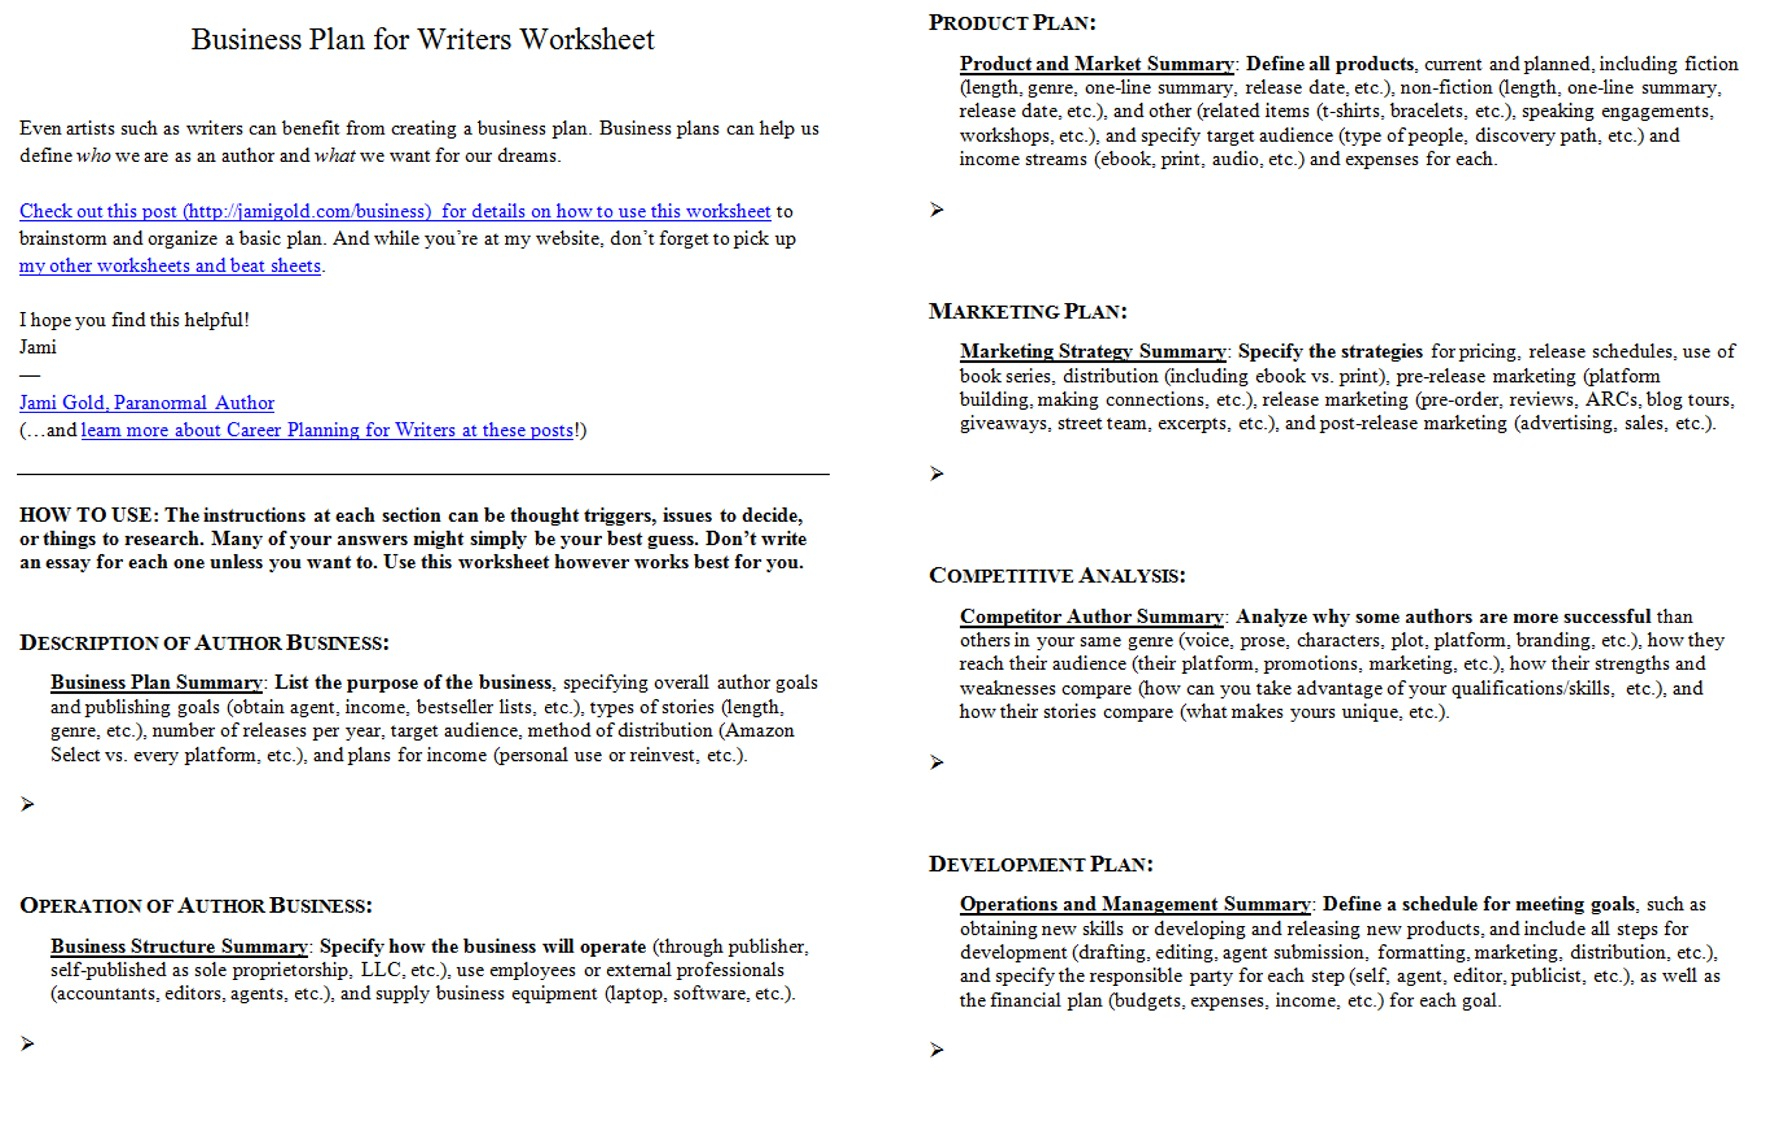 Aldiablosus  Personable Worksheets For Writers  Jami Gold Paranormal Author With Exciting Screen Shot Of Both Pages Of The Business Plan For Writers Worksheet With Delectable Topographic Map Worksheets Also Decimal Worksheets Pdf In Addition Thirteen Days Movie Worksheet And Addition Without Regrouping Worksheets As Well As Right Angles Worksheet Additionally Numbers In Words Worksheets From Jamigoldcom With Aldiablosus  Exciting Worksheets For Writers  Jami Gold Paranormal Author With Delectable Screen Shot Of Both Pages Of The Business Plan For Writers Worksheet And Personable Topographic Map Worksheets Also Decimal Worksheets Pdf In Addition Thirteen Days Movie Worksheet From Jamigoldcom